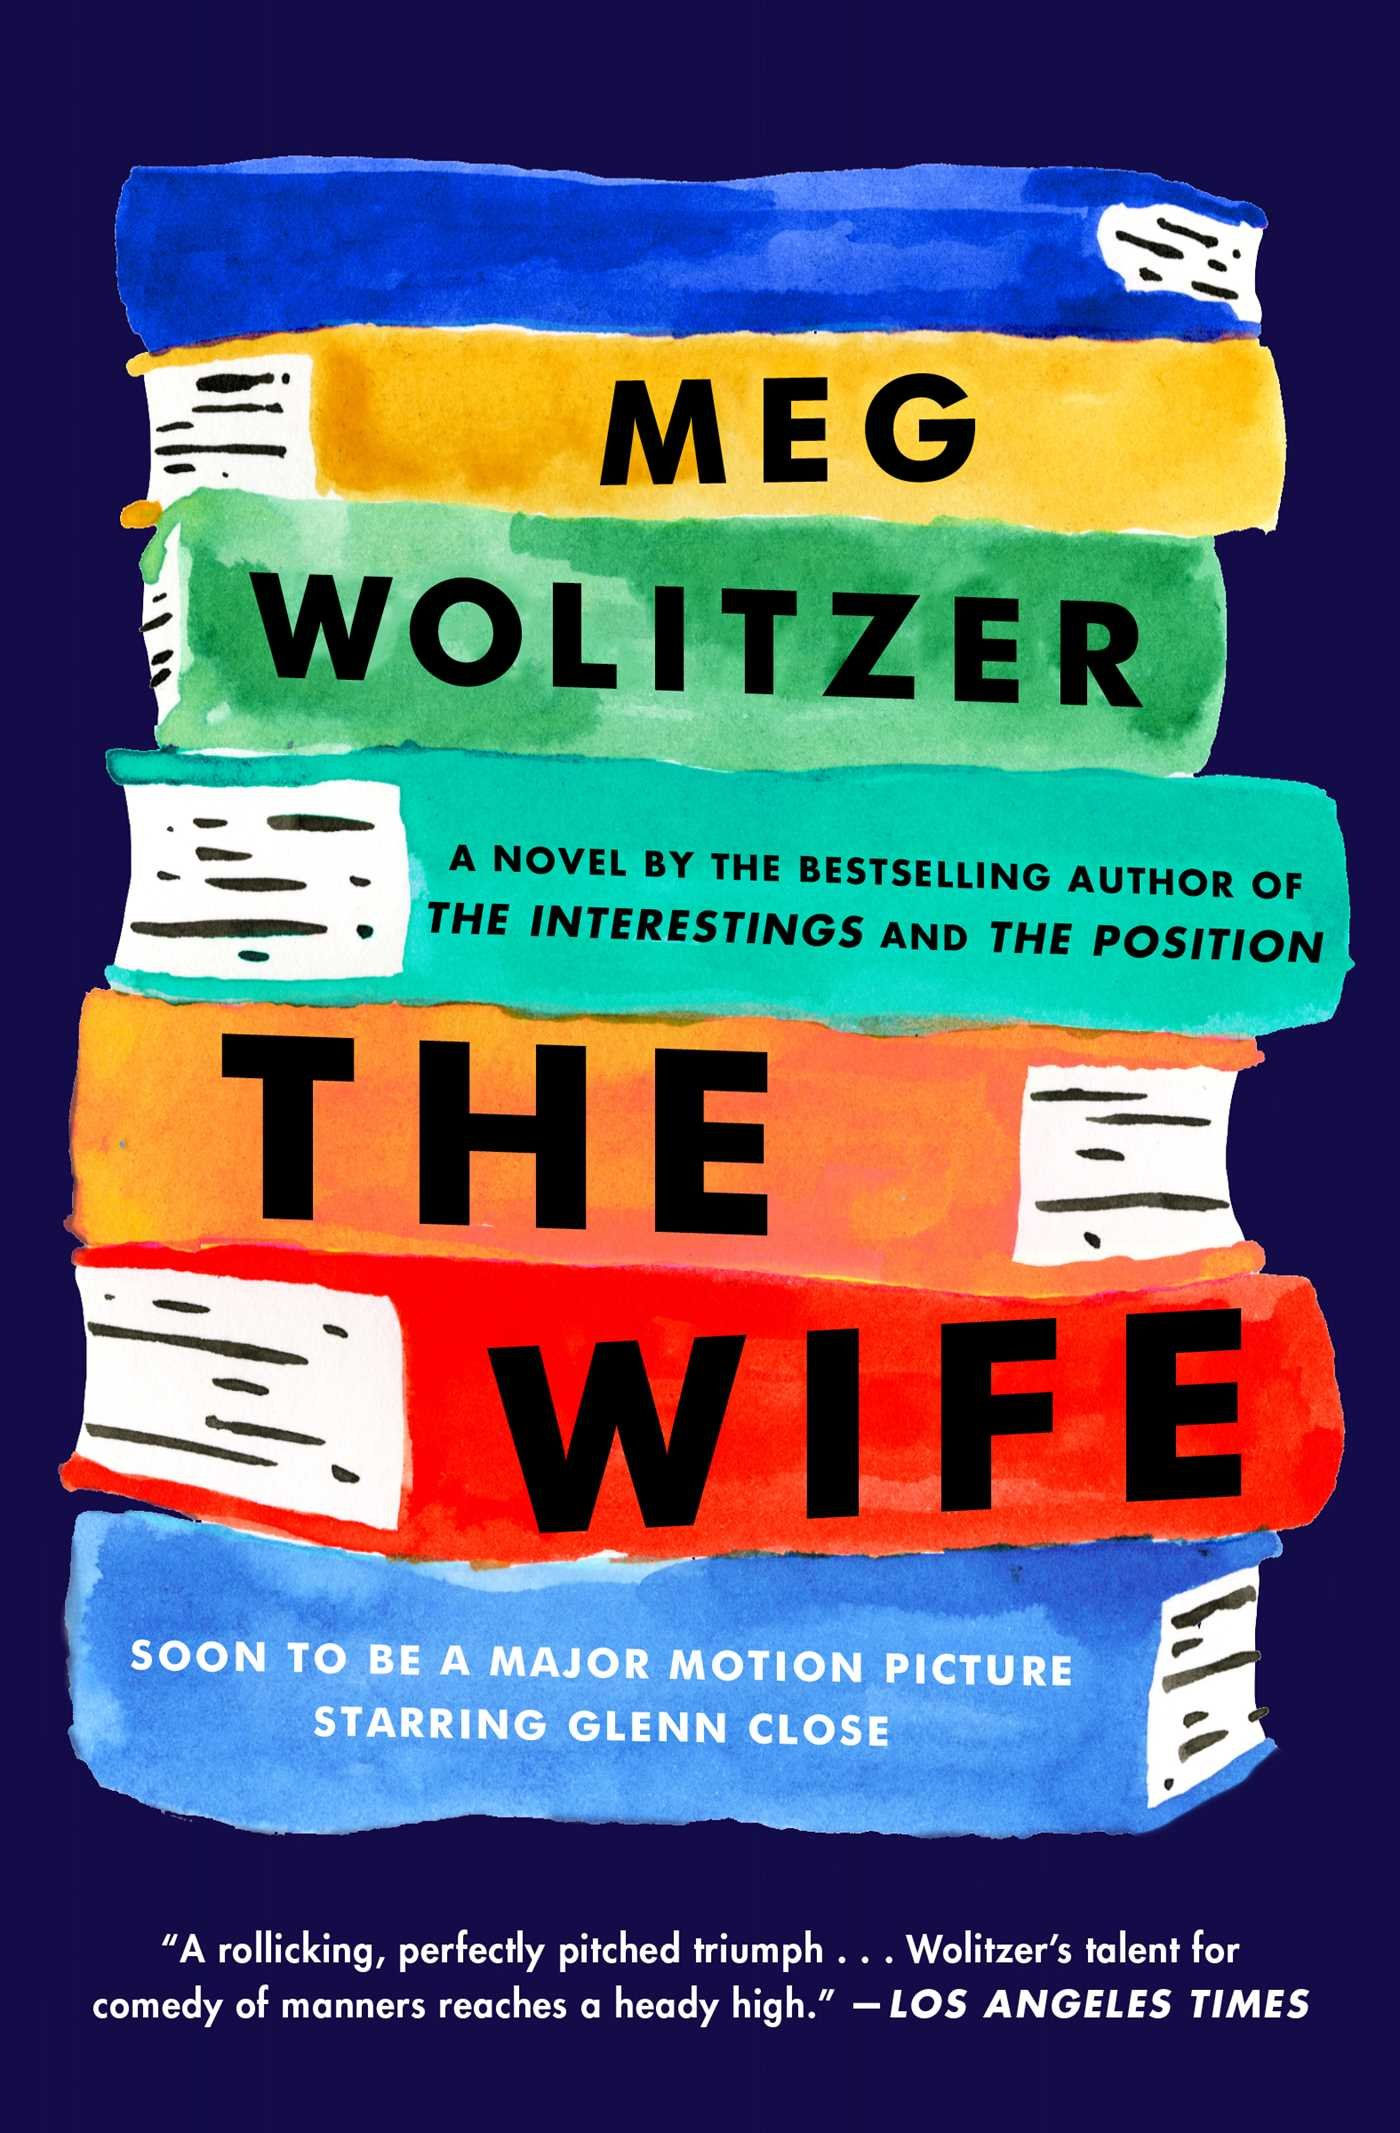 Image result for the wife meg wolitzer book